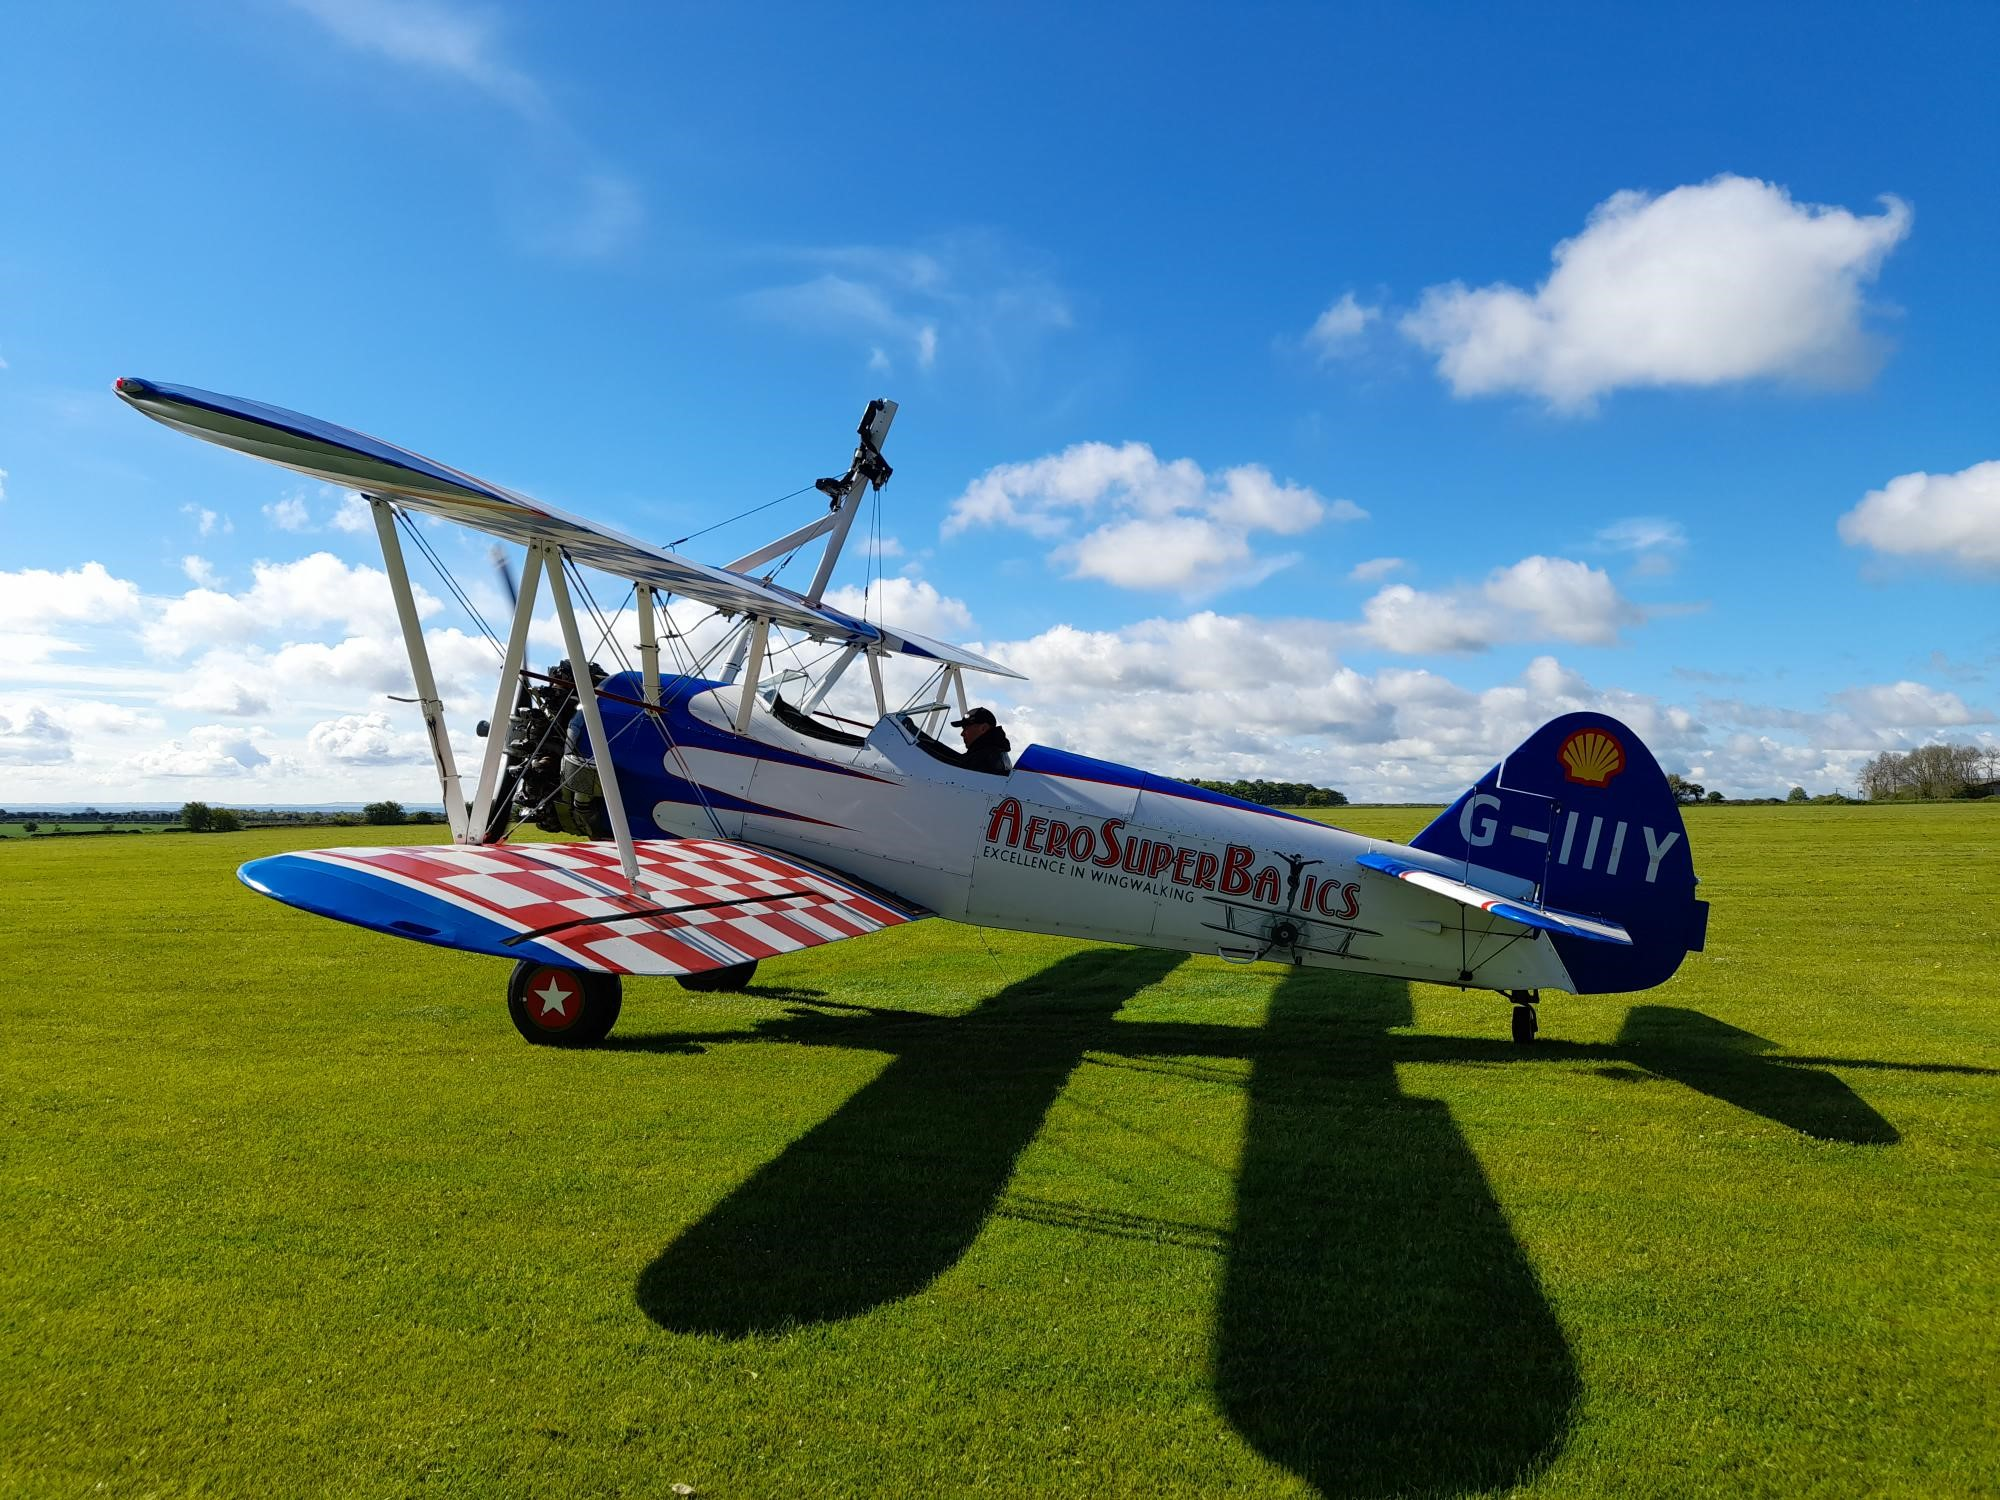 Wing Walking experience, flying in style